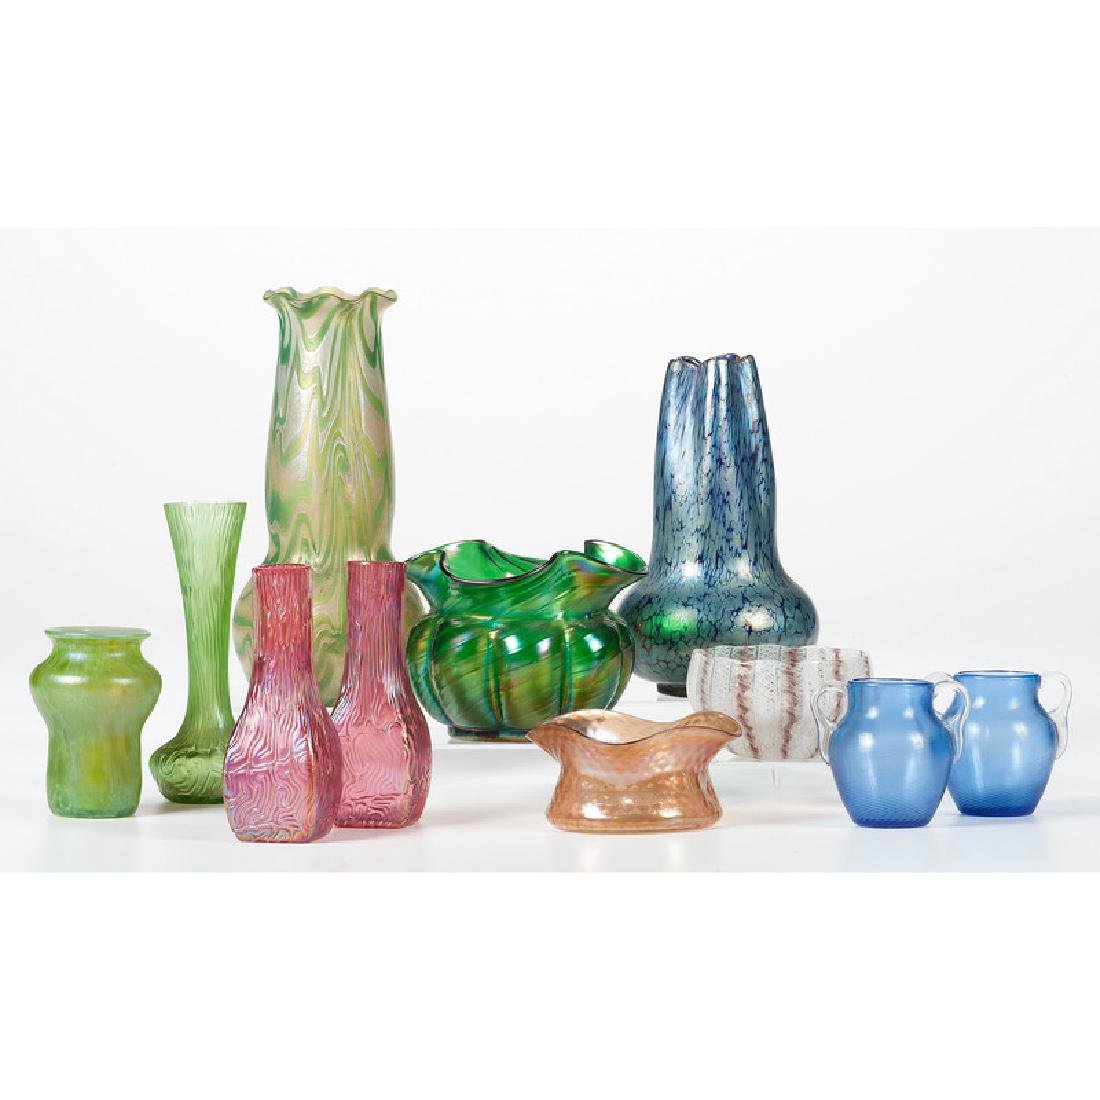 Art Glass Vases and Bowls